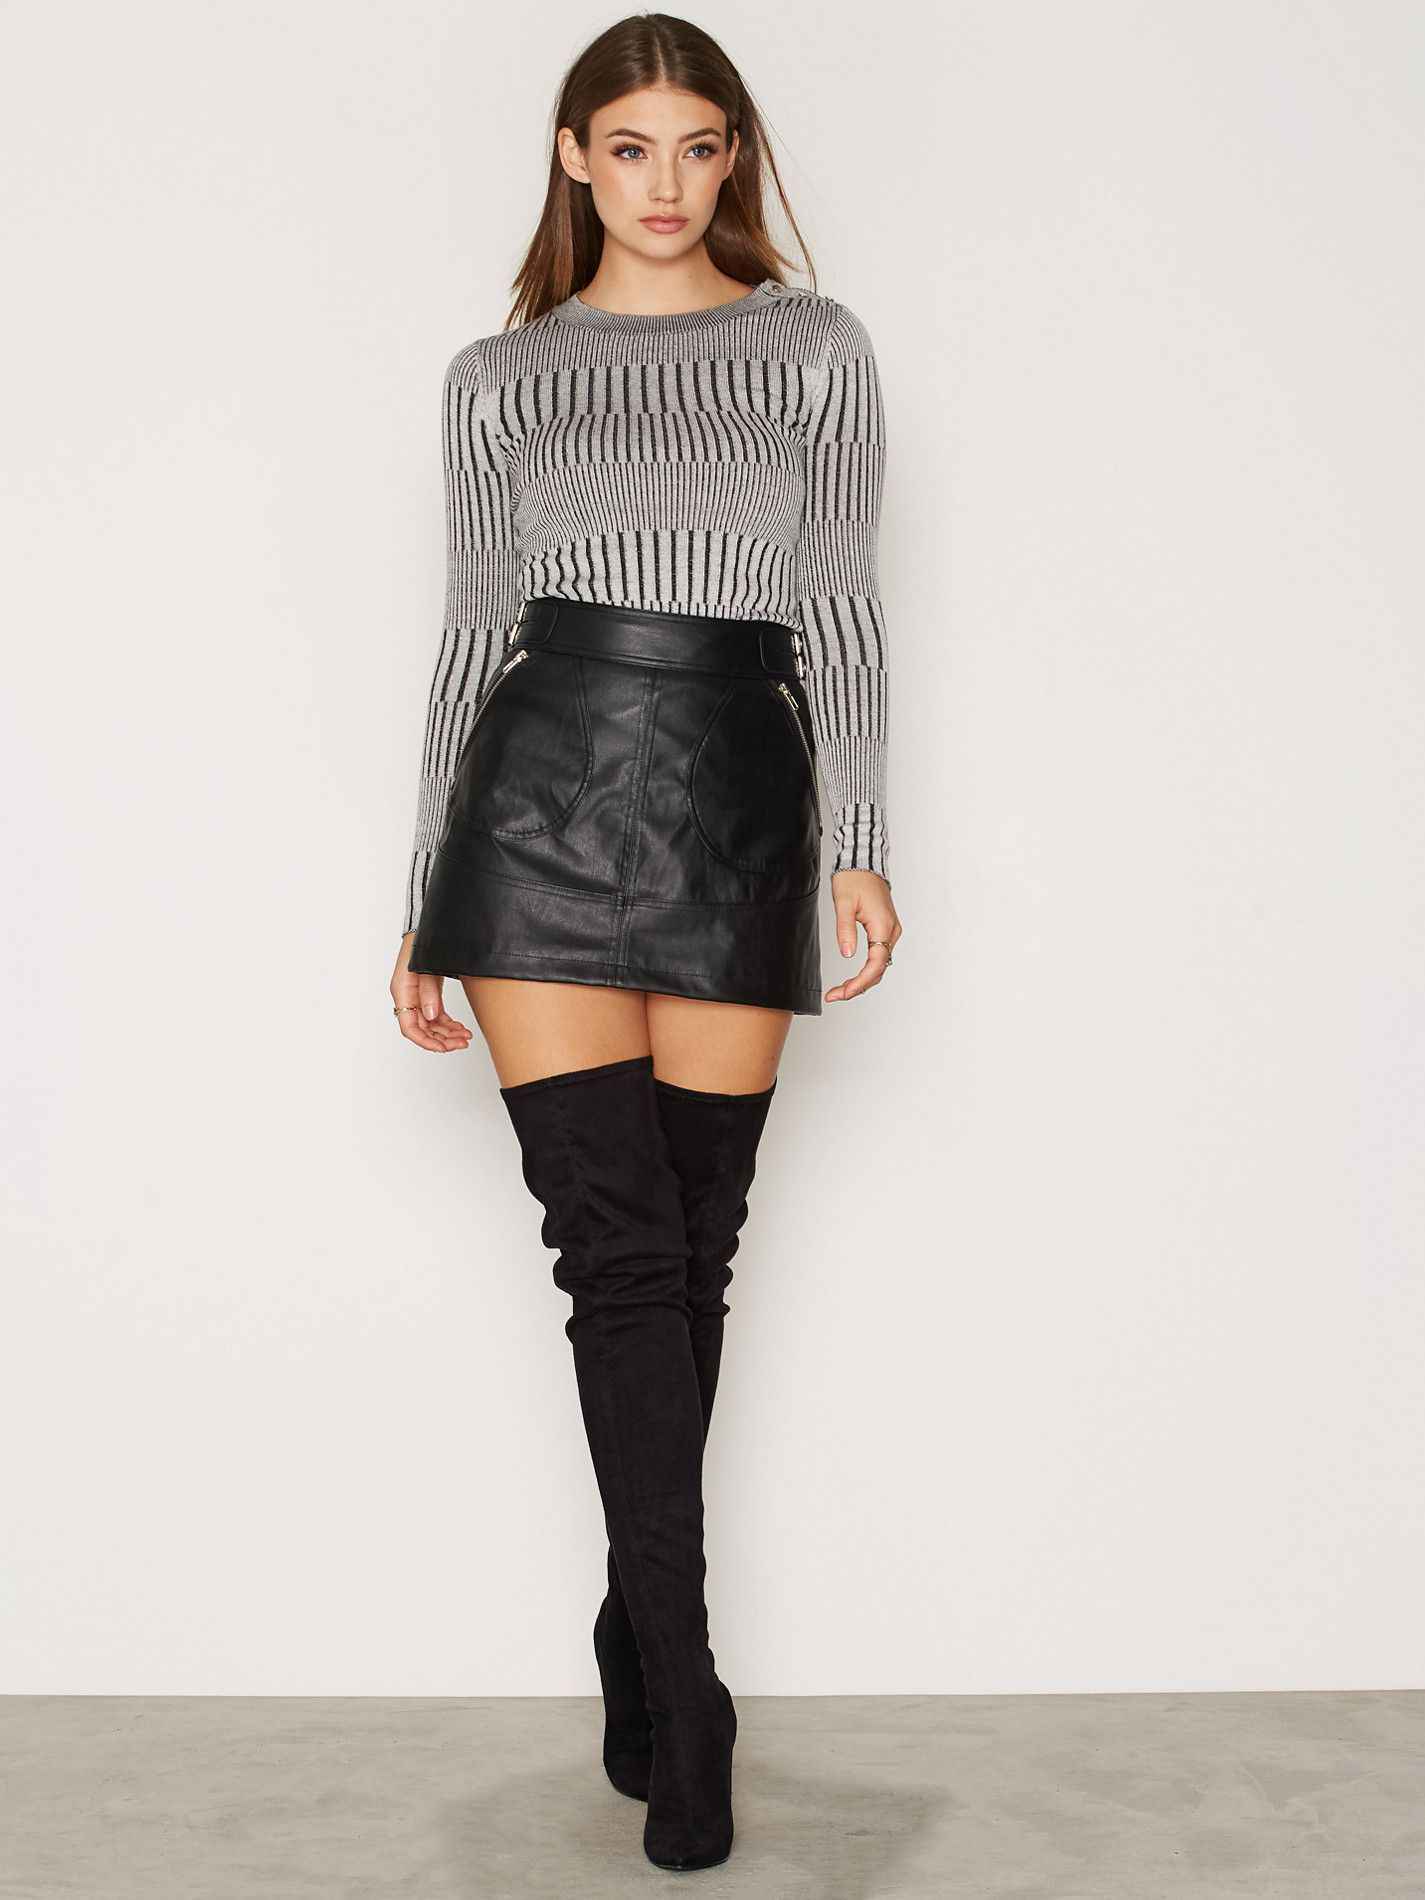 Black leather A-Line miniskirt and thigh boots   Leather mini skirts, Mini  skirts, Fashion